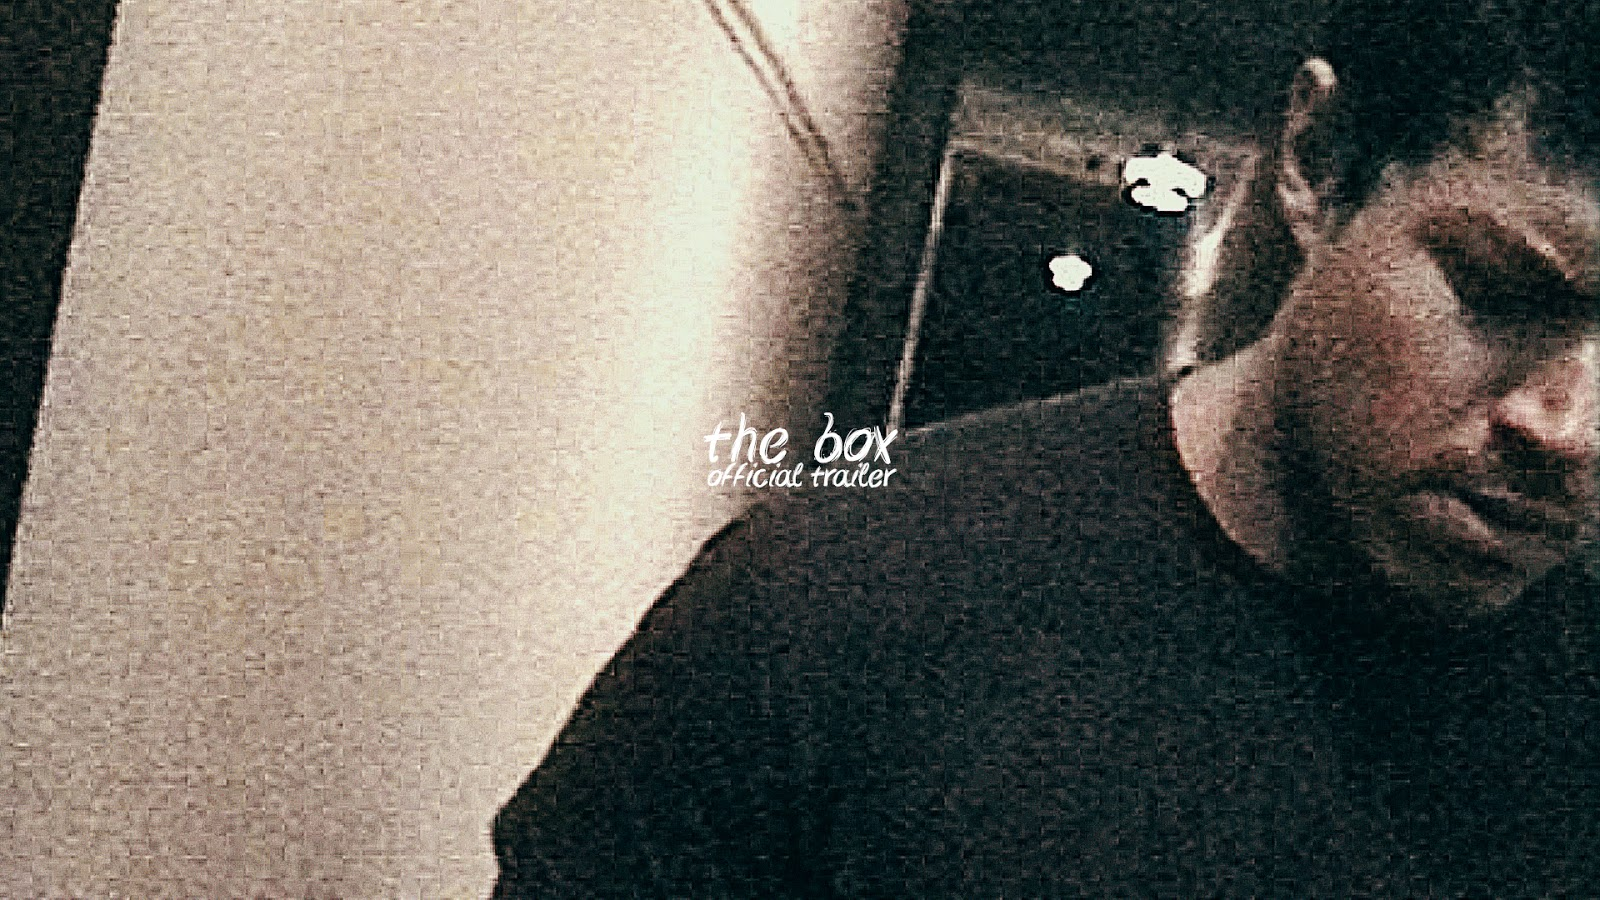 The Box (Official Trailer)